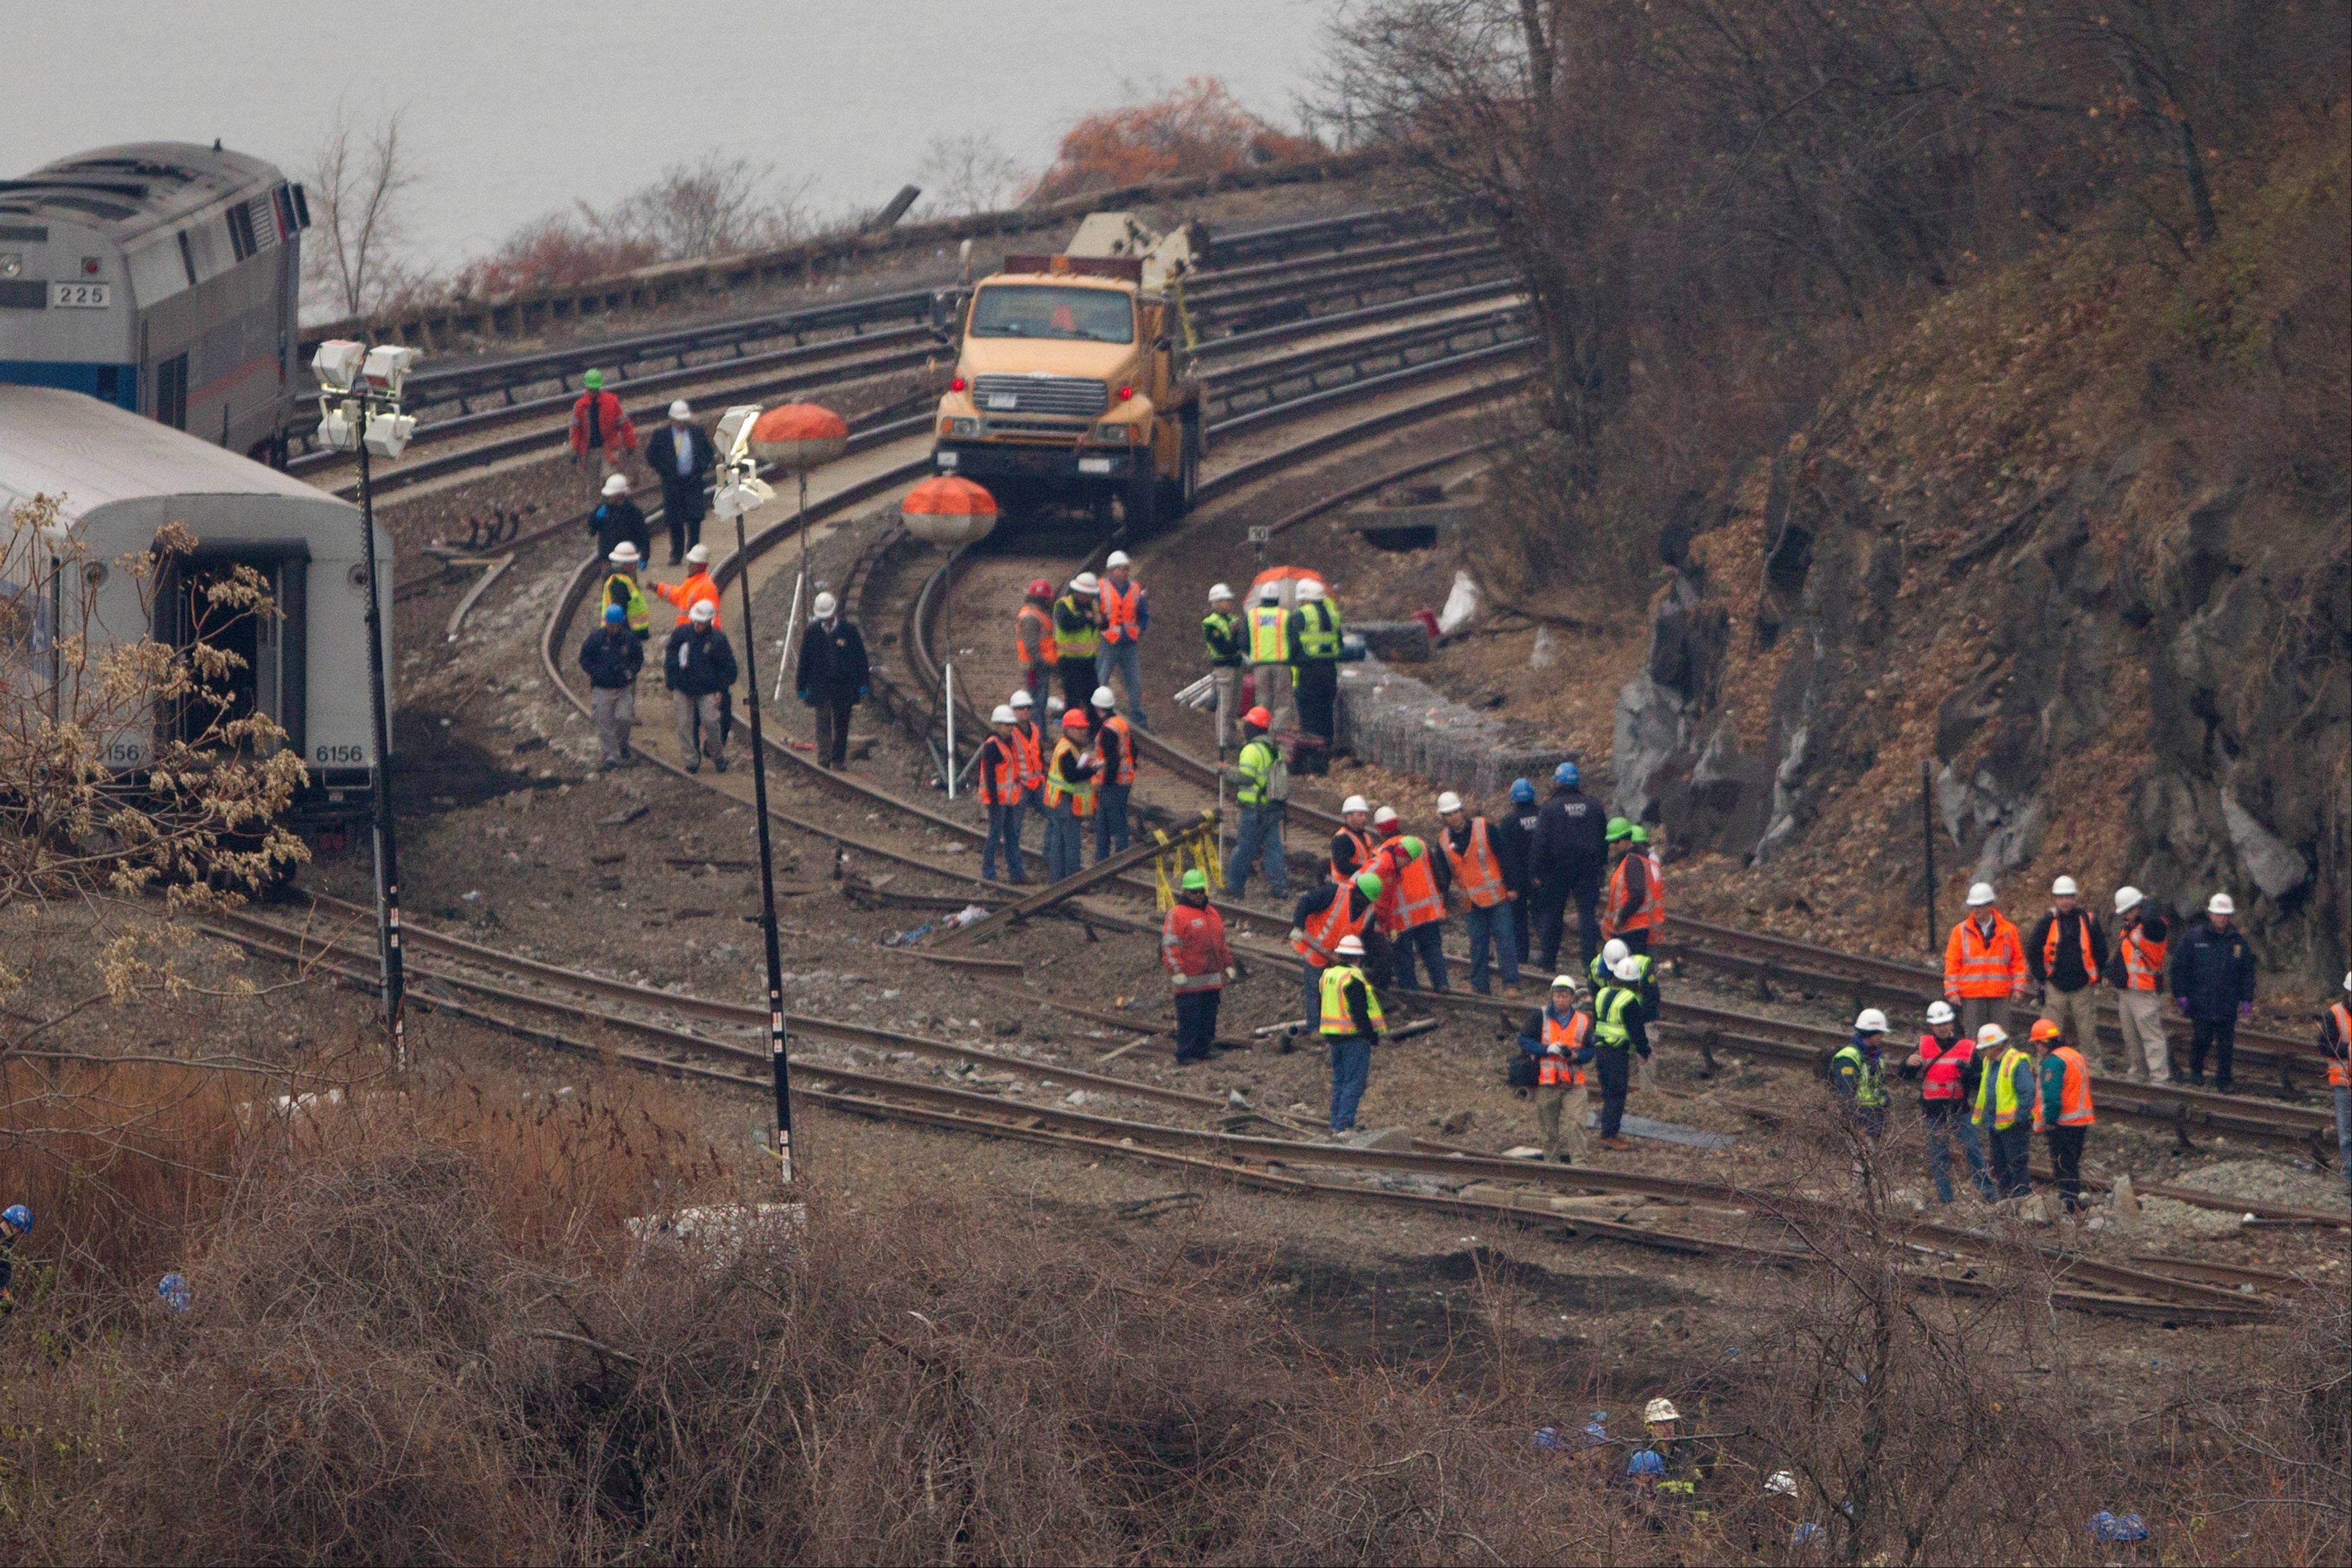 Daily Herald File Photo A tragic commuter train crash that killed four people Dec. 1 in the Bronx is making the 2015 deadline to install a safety system unavoidable, Metra officials think.